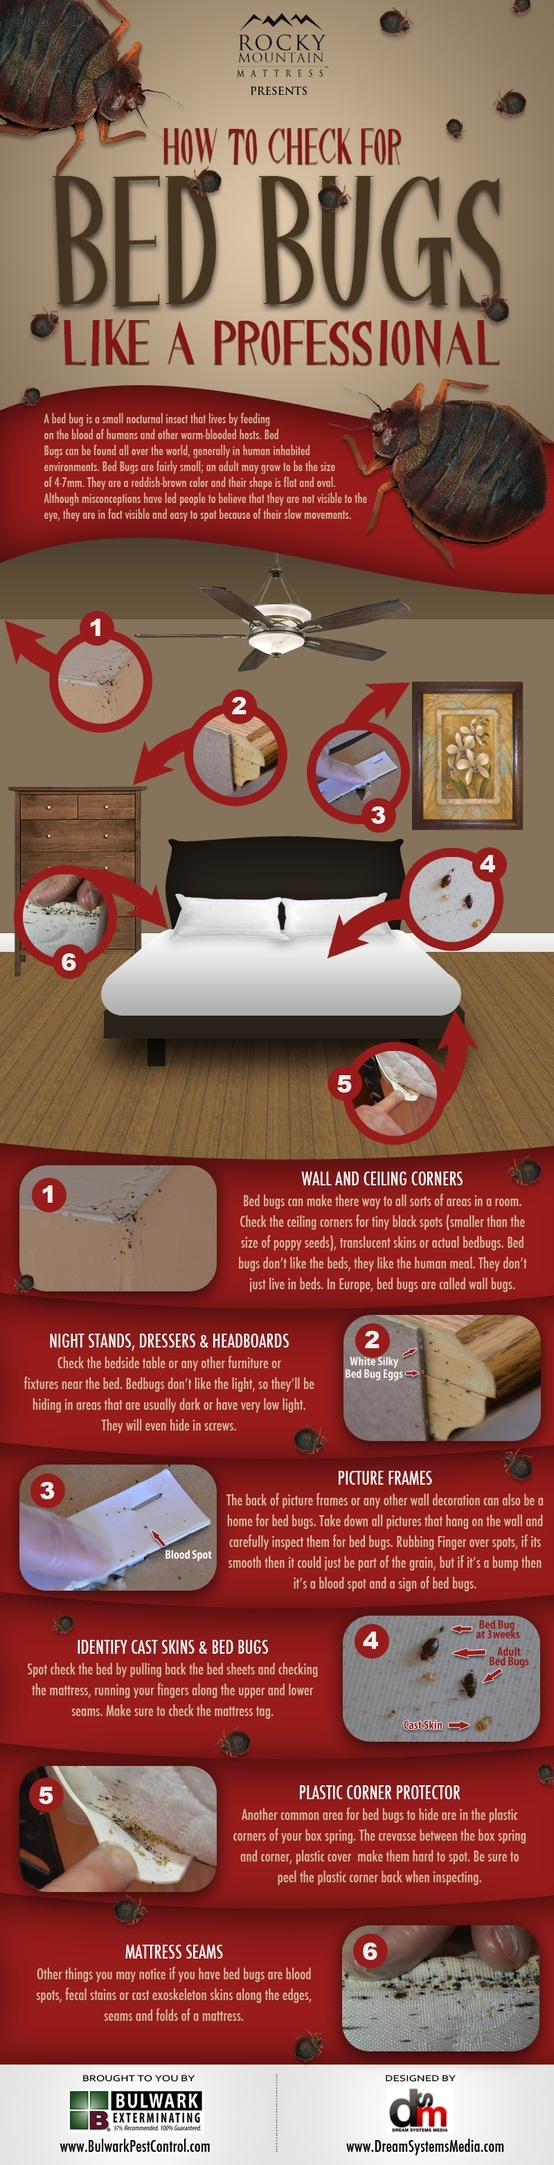 Bugged Out by Bed Bugs? Bed bugs, Rid of bed bugs, Bed